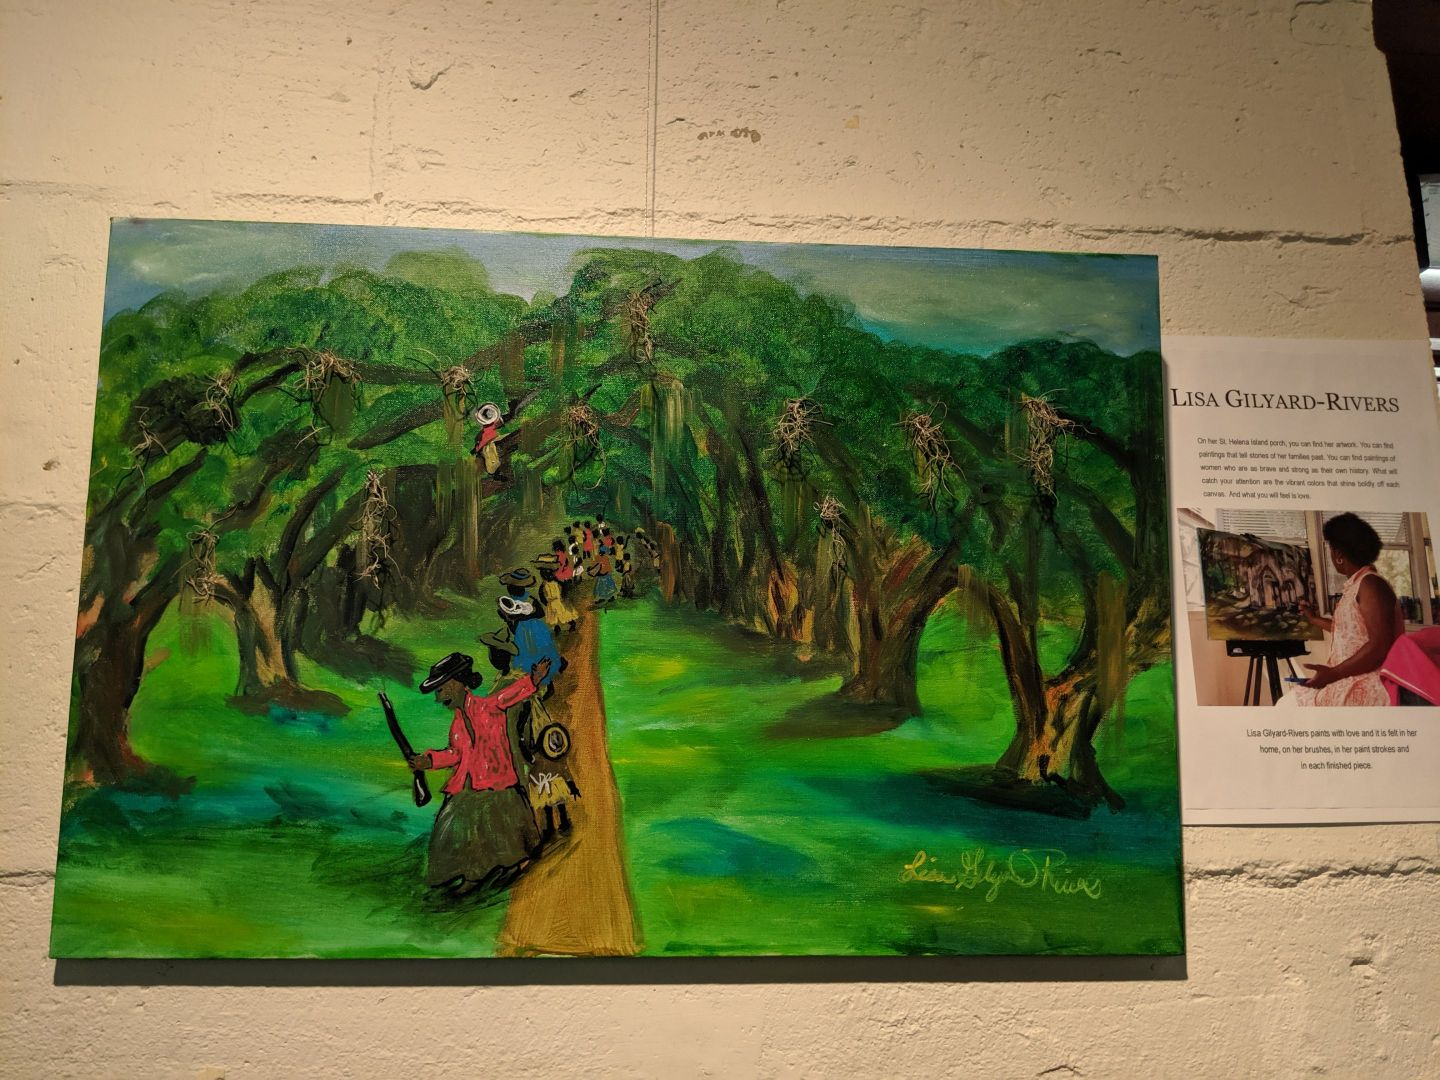 IMG_20190608_140748-1 The Art of Lisa Gilyard-Rivers: A Gullah Homecoming Exhibit at Penn Center